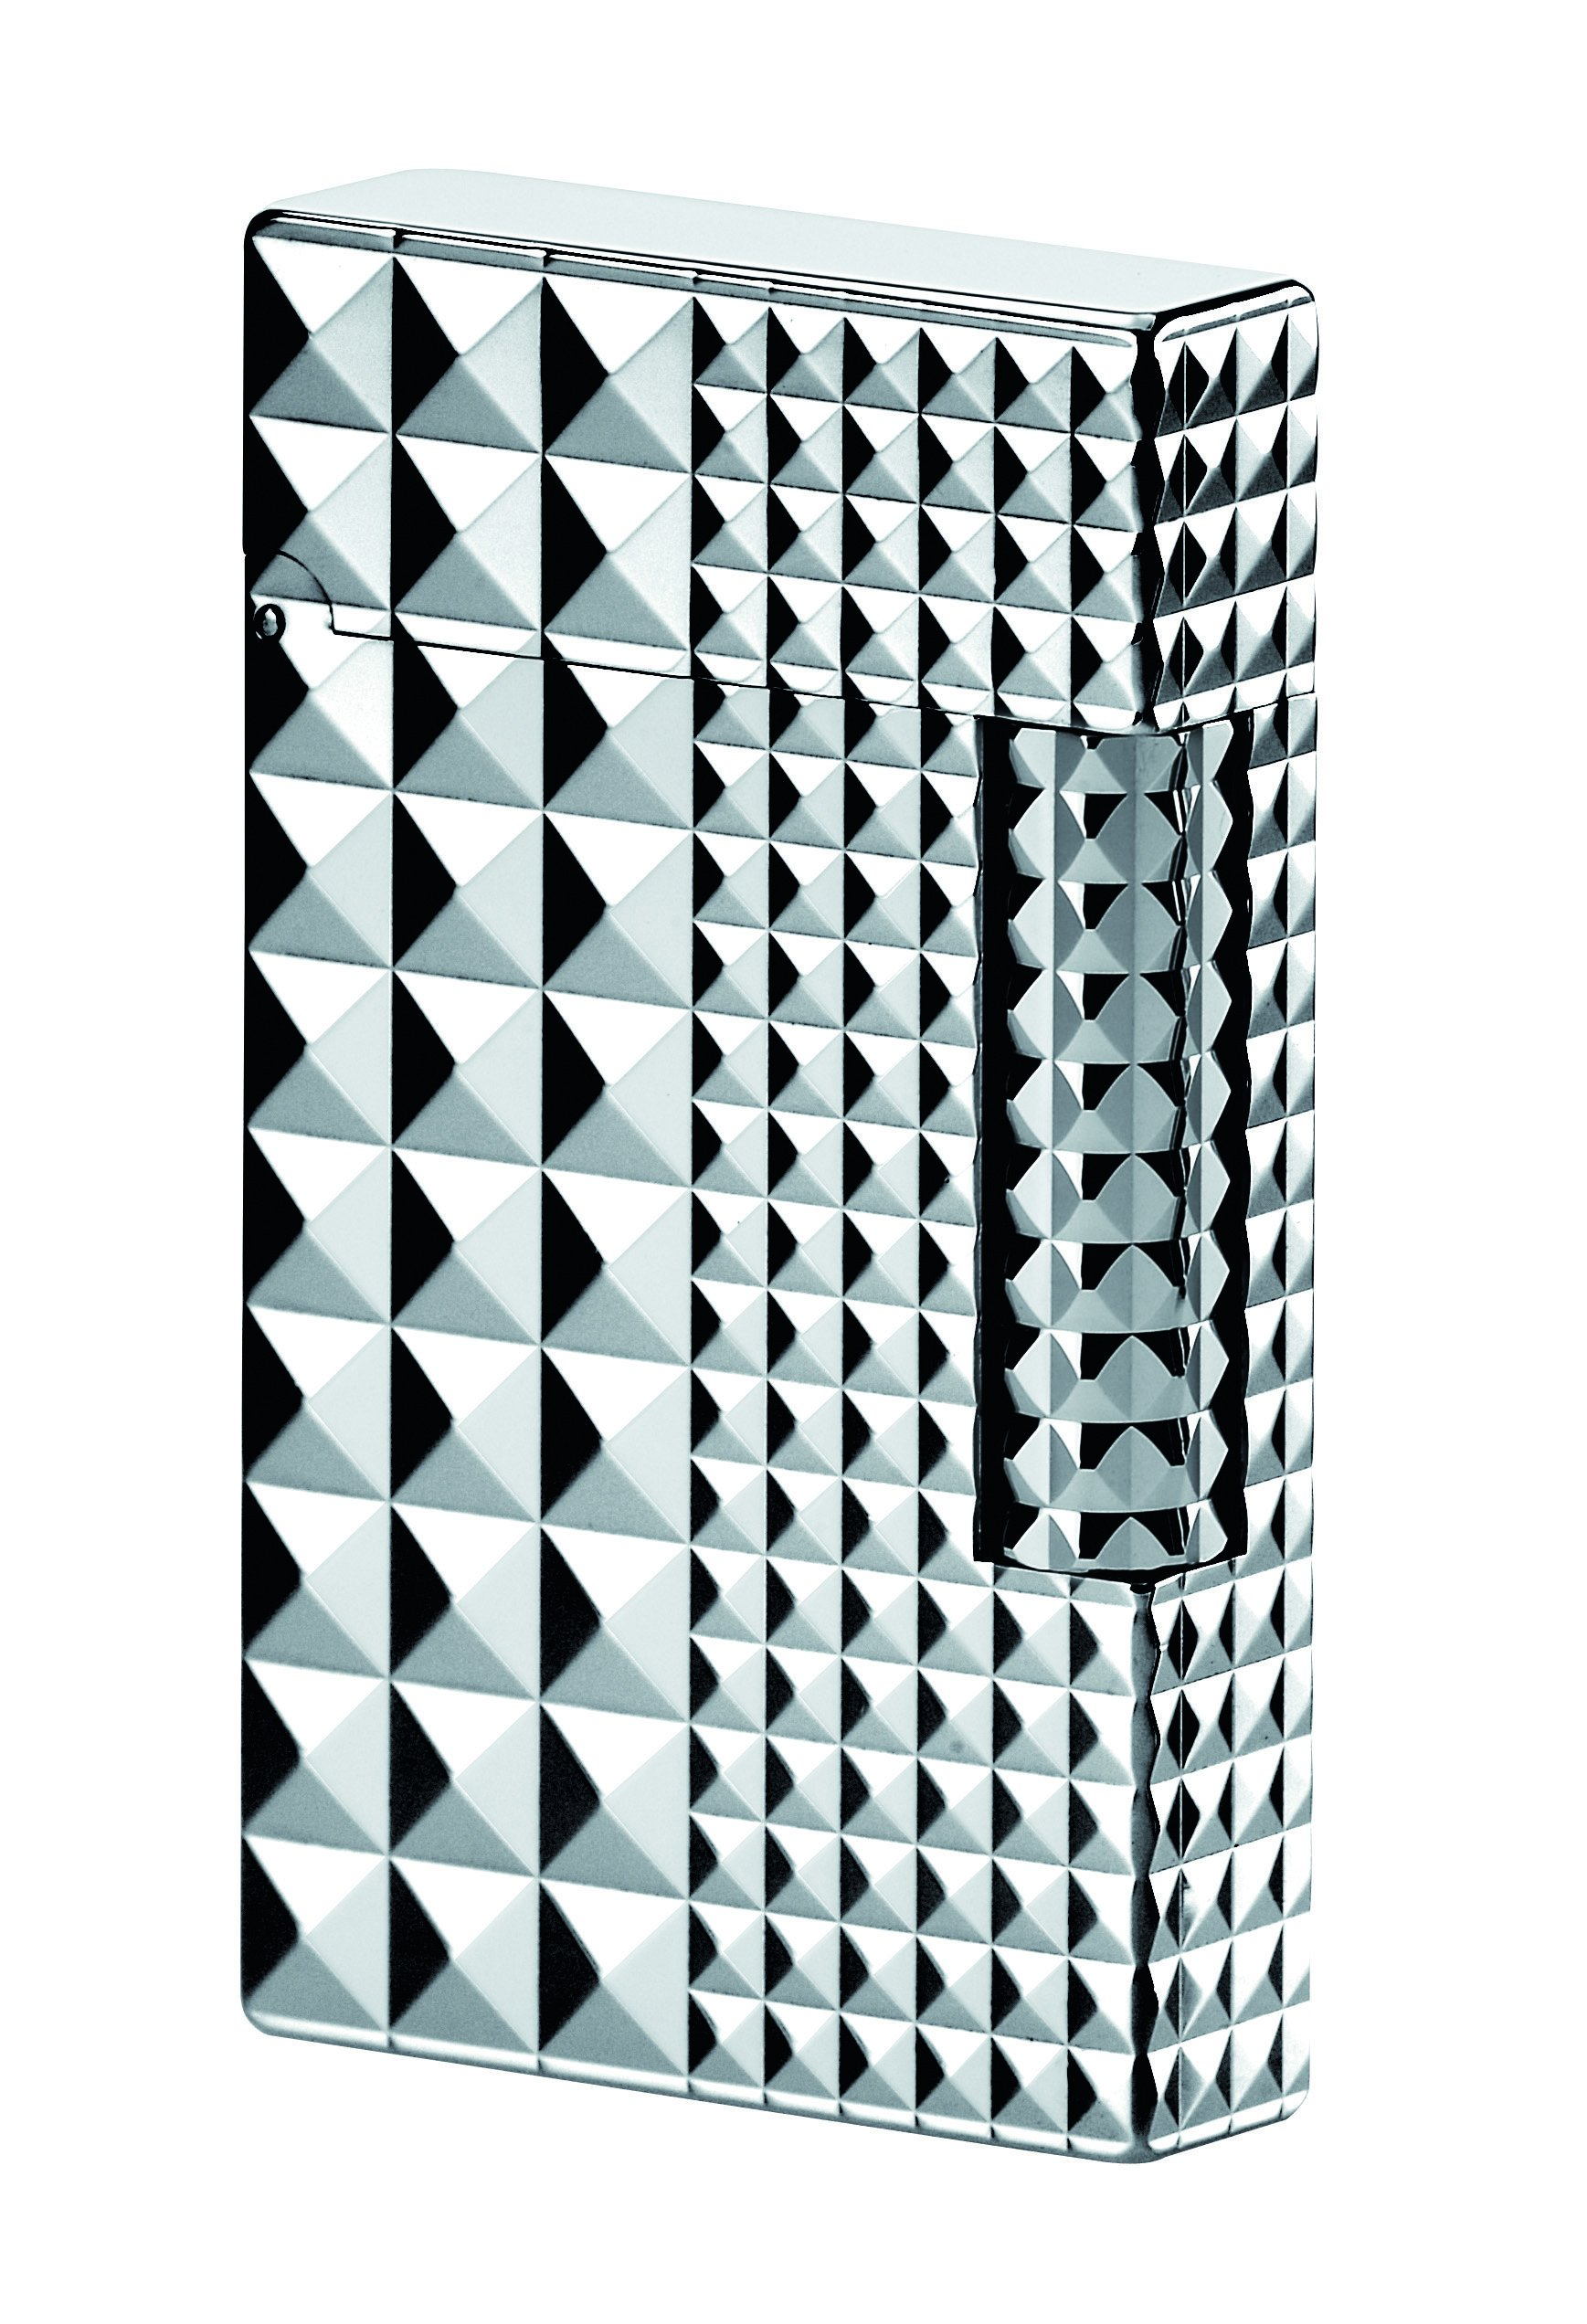 S.T. Dupont Palladium Line 2 Lighter - Diamond heads by S.T. Dupont (Image #1)